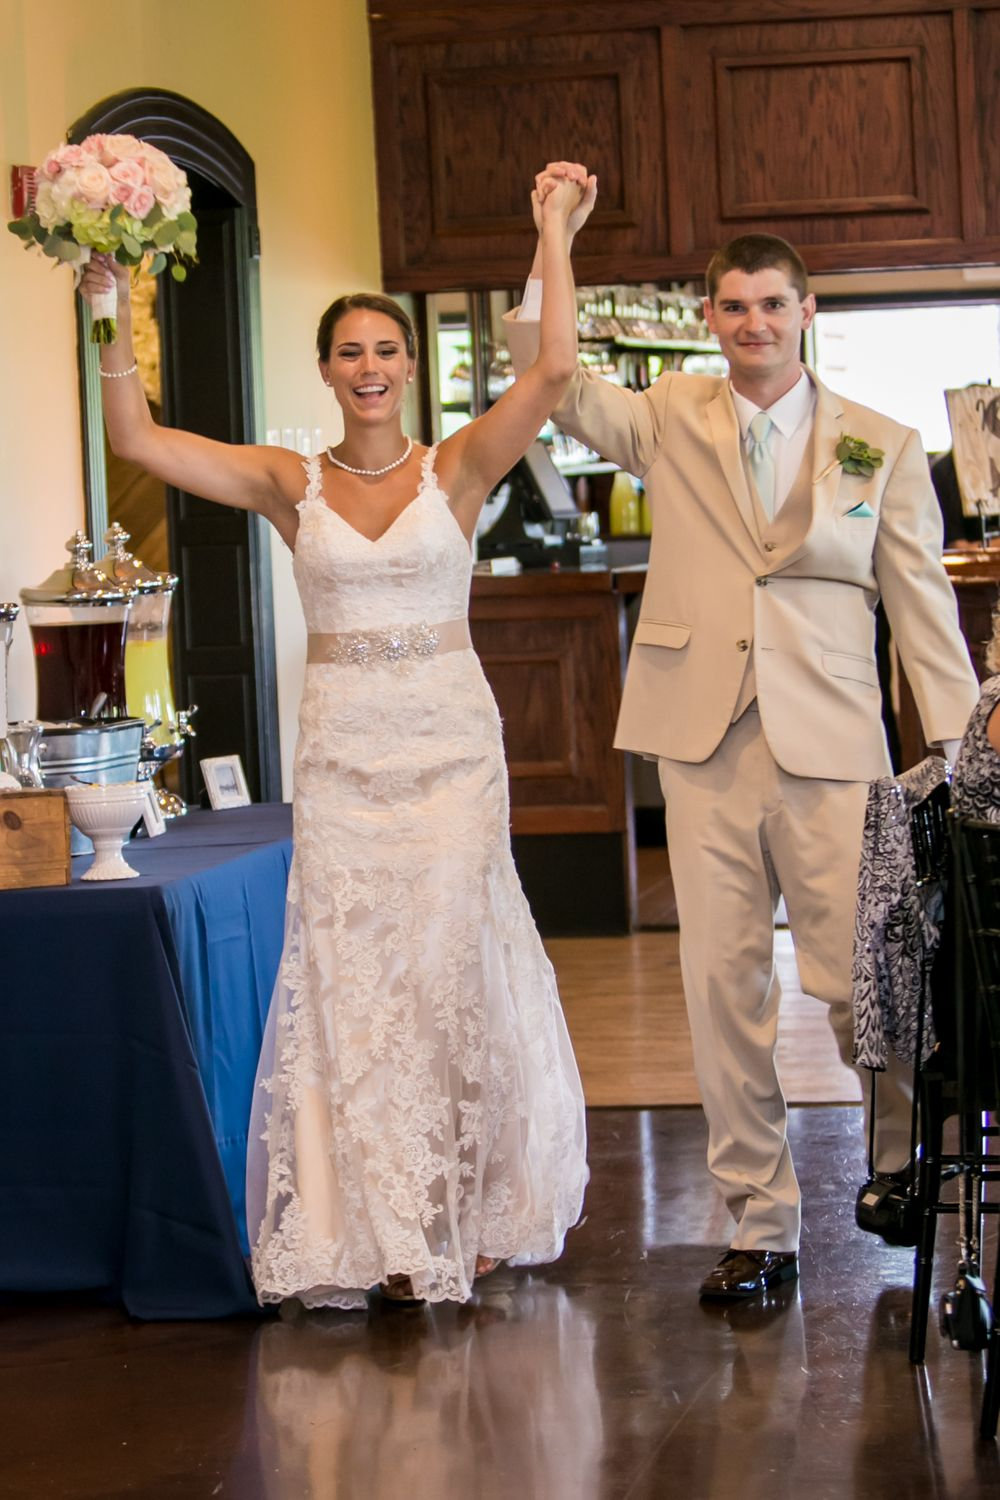 Bride Alex and groom Mike make their entrance at their wedding reception at Stone River in West Columbia, SC